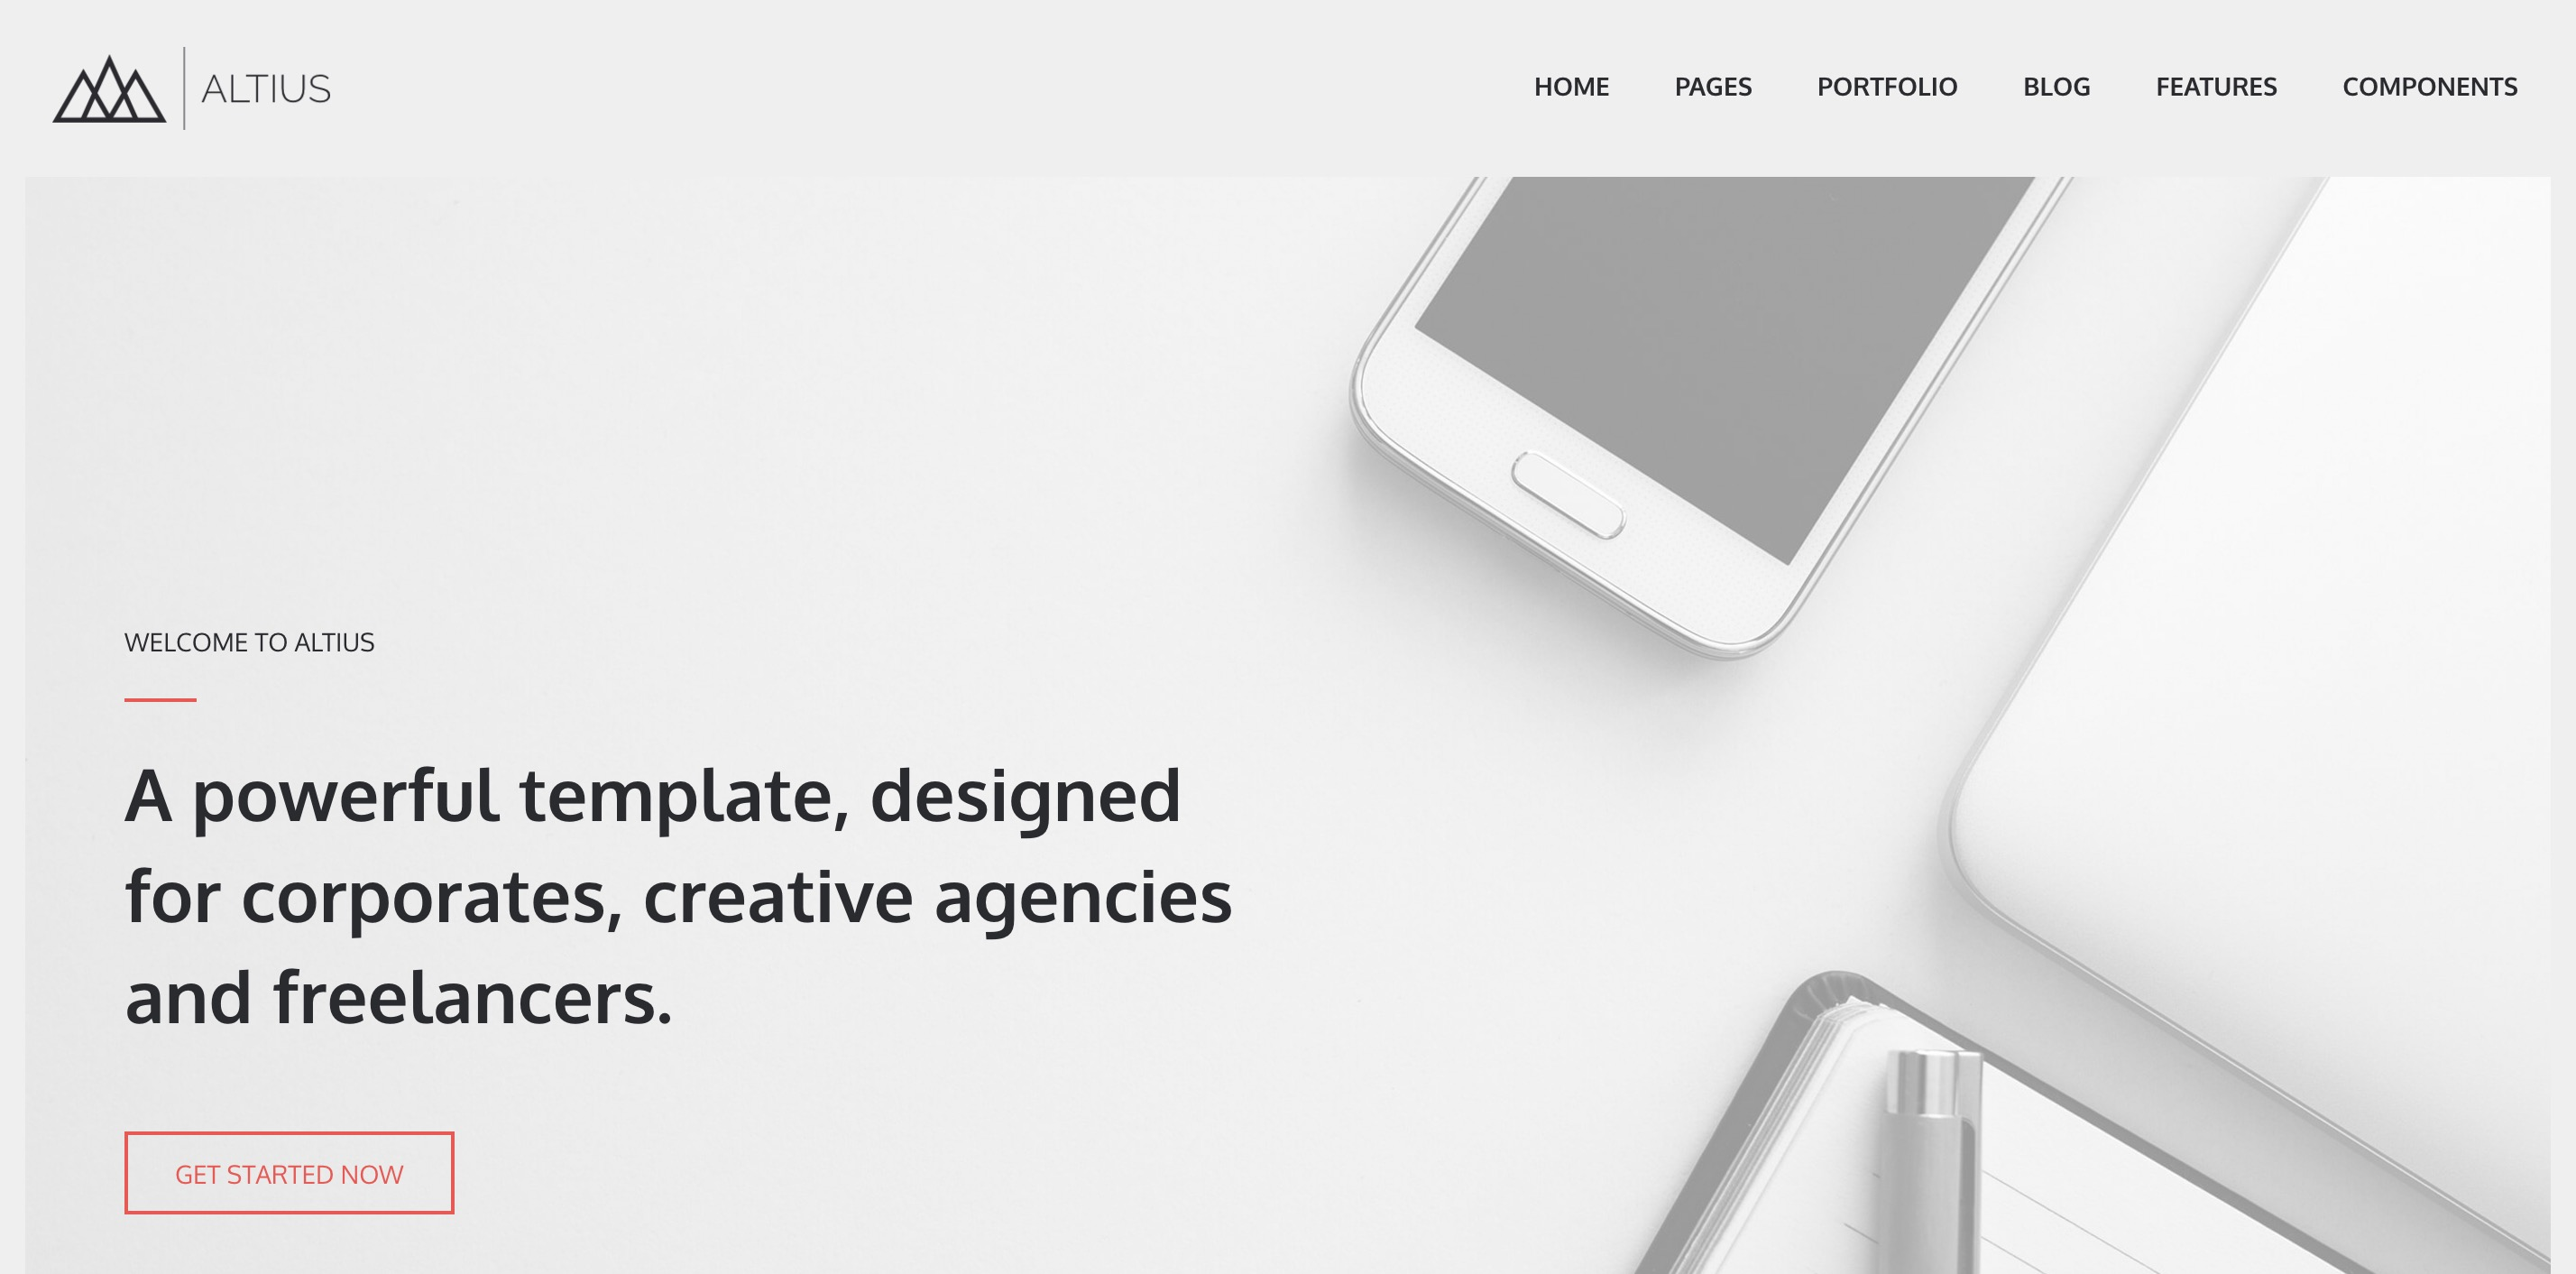 Altius Theme - The 2nd Edition